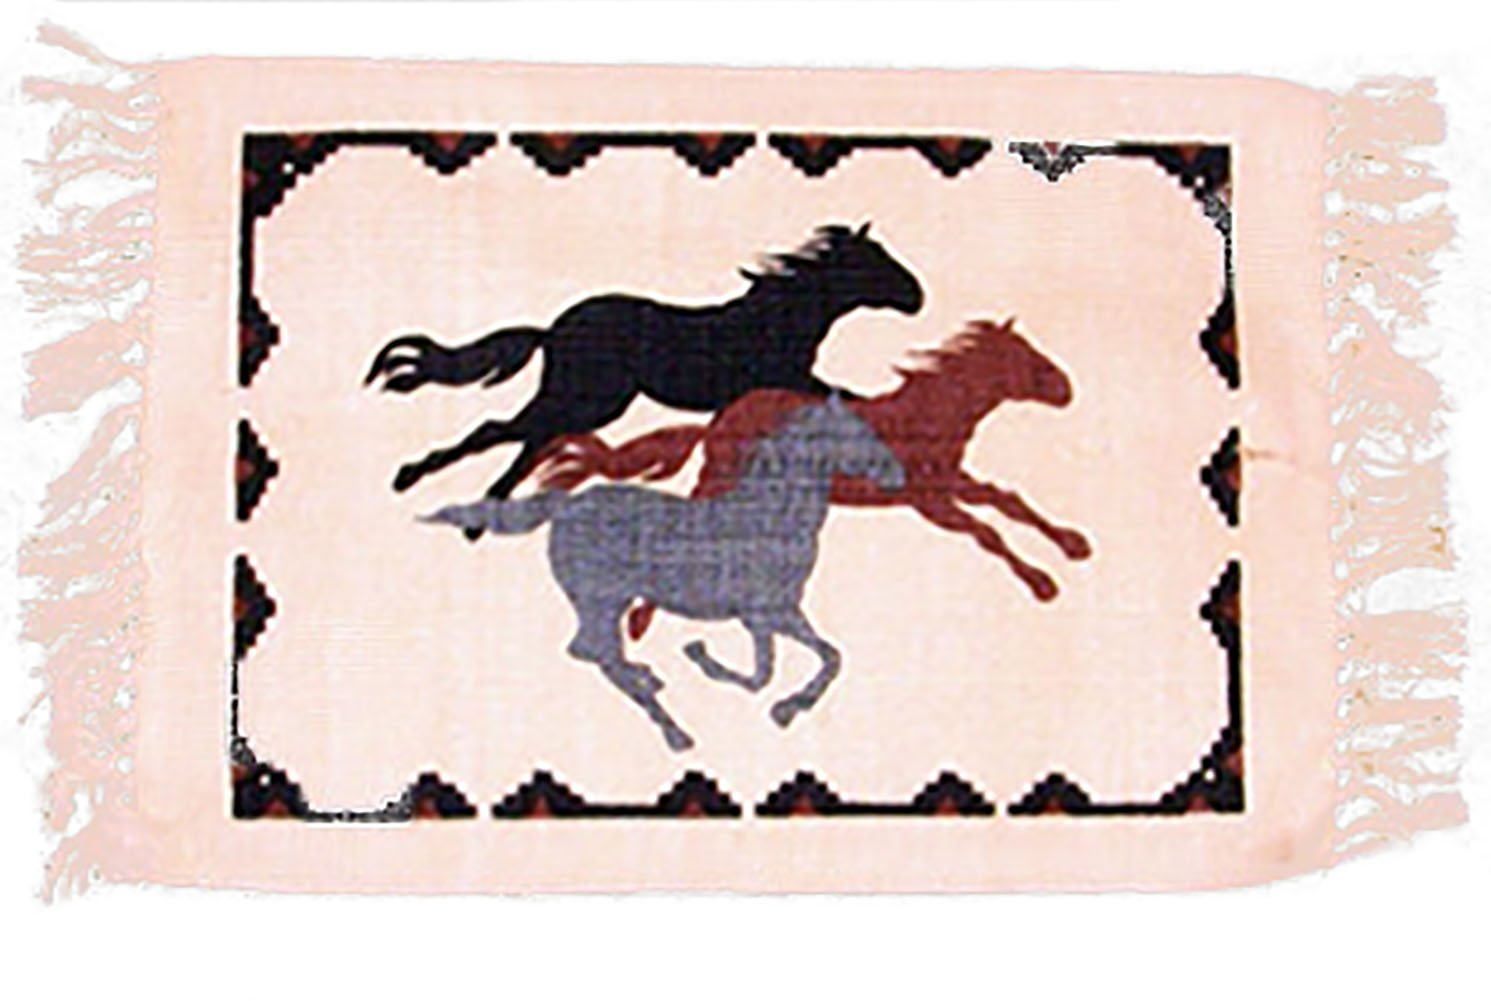 "Unique & Custom {13'' x 19'' Inch} Set Pack of 4 Rectangle ""Non-Slip Grip Texture"" Large Table Placemat Made of Cotton w/ Rustic Country Horse Stallion Fringed Design [Colorful Beige, Black & Red]"